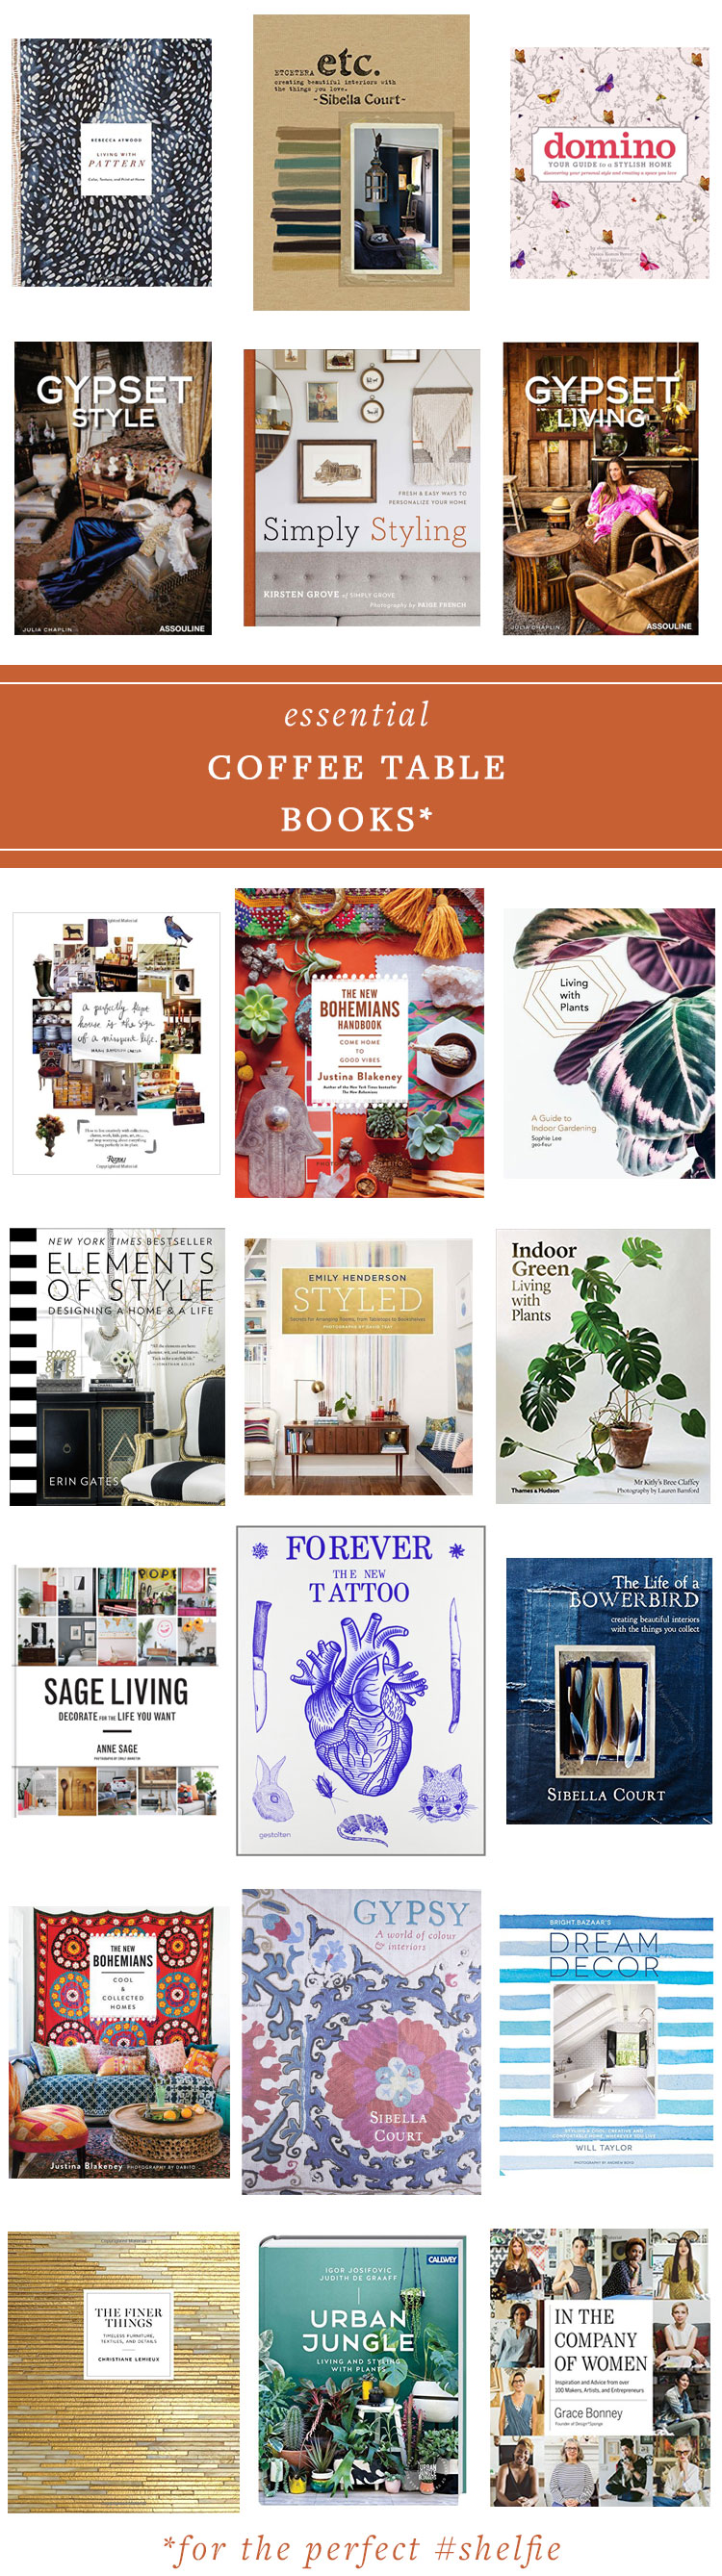 my essential coffee table books to style the perfect #shelfie! get the full source list on jojotastic.com